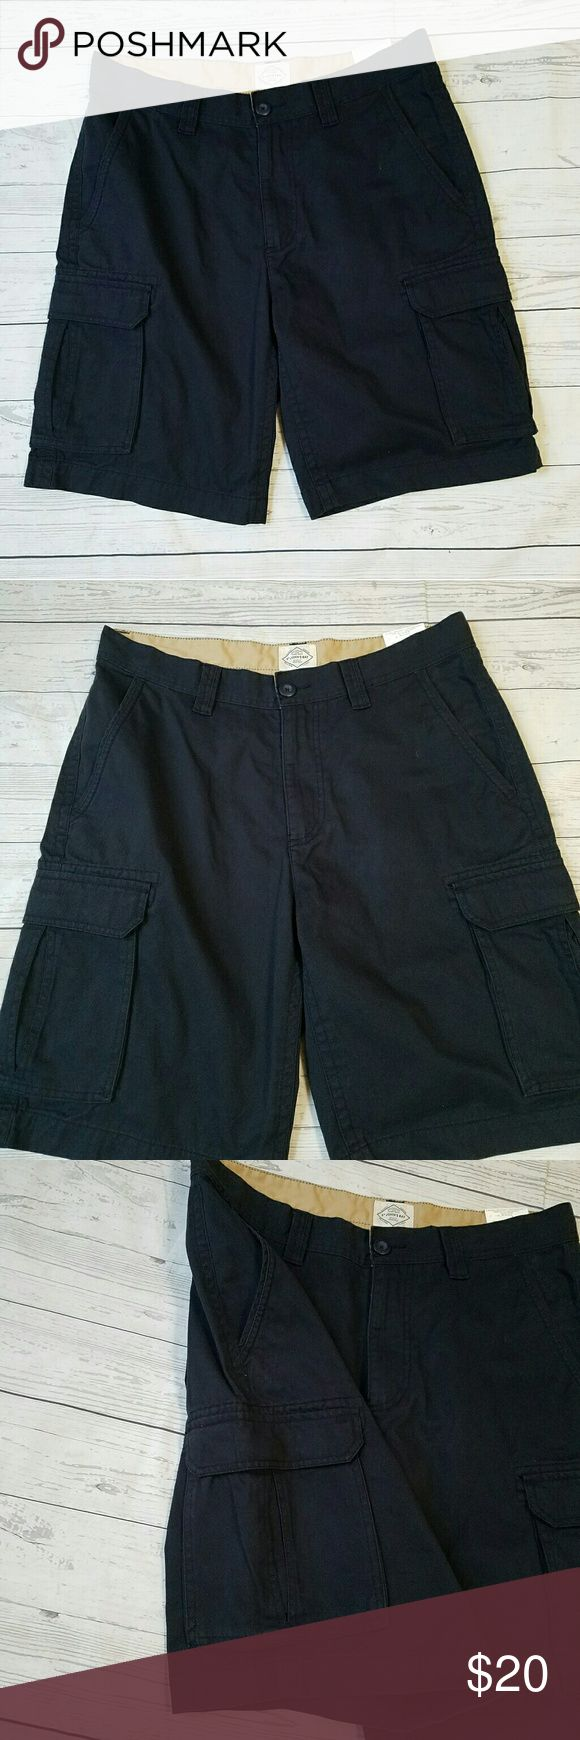 "Mens Legacy Cargo Shorts Men's twill cargo shorts. 100% cotton.  17"" across the top of the waist  22 3/4"" across the hips  11 3/4"" across the leg opening. 10"" inseam. All measurements taken lying flat and unstretched.  Color: Aviator Blue St. John's Bay Shorts Cargo"